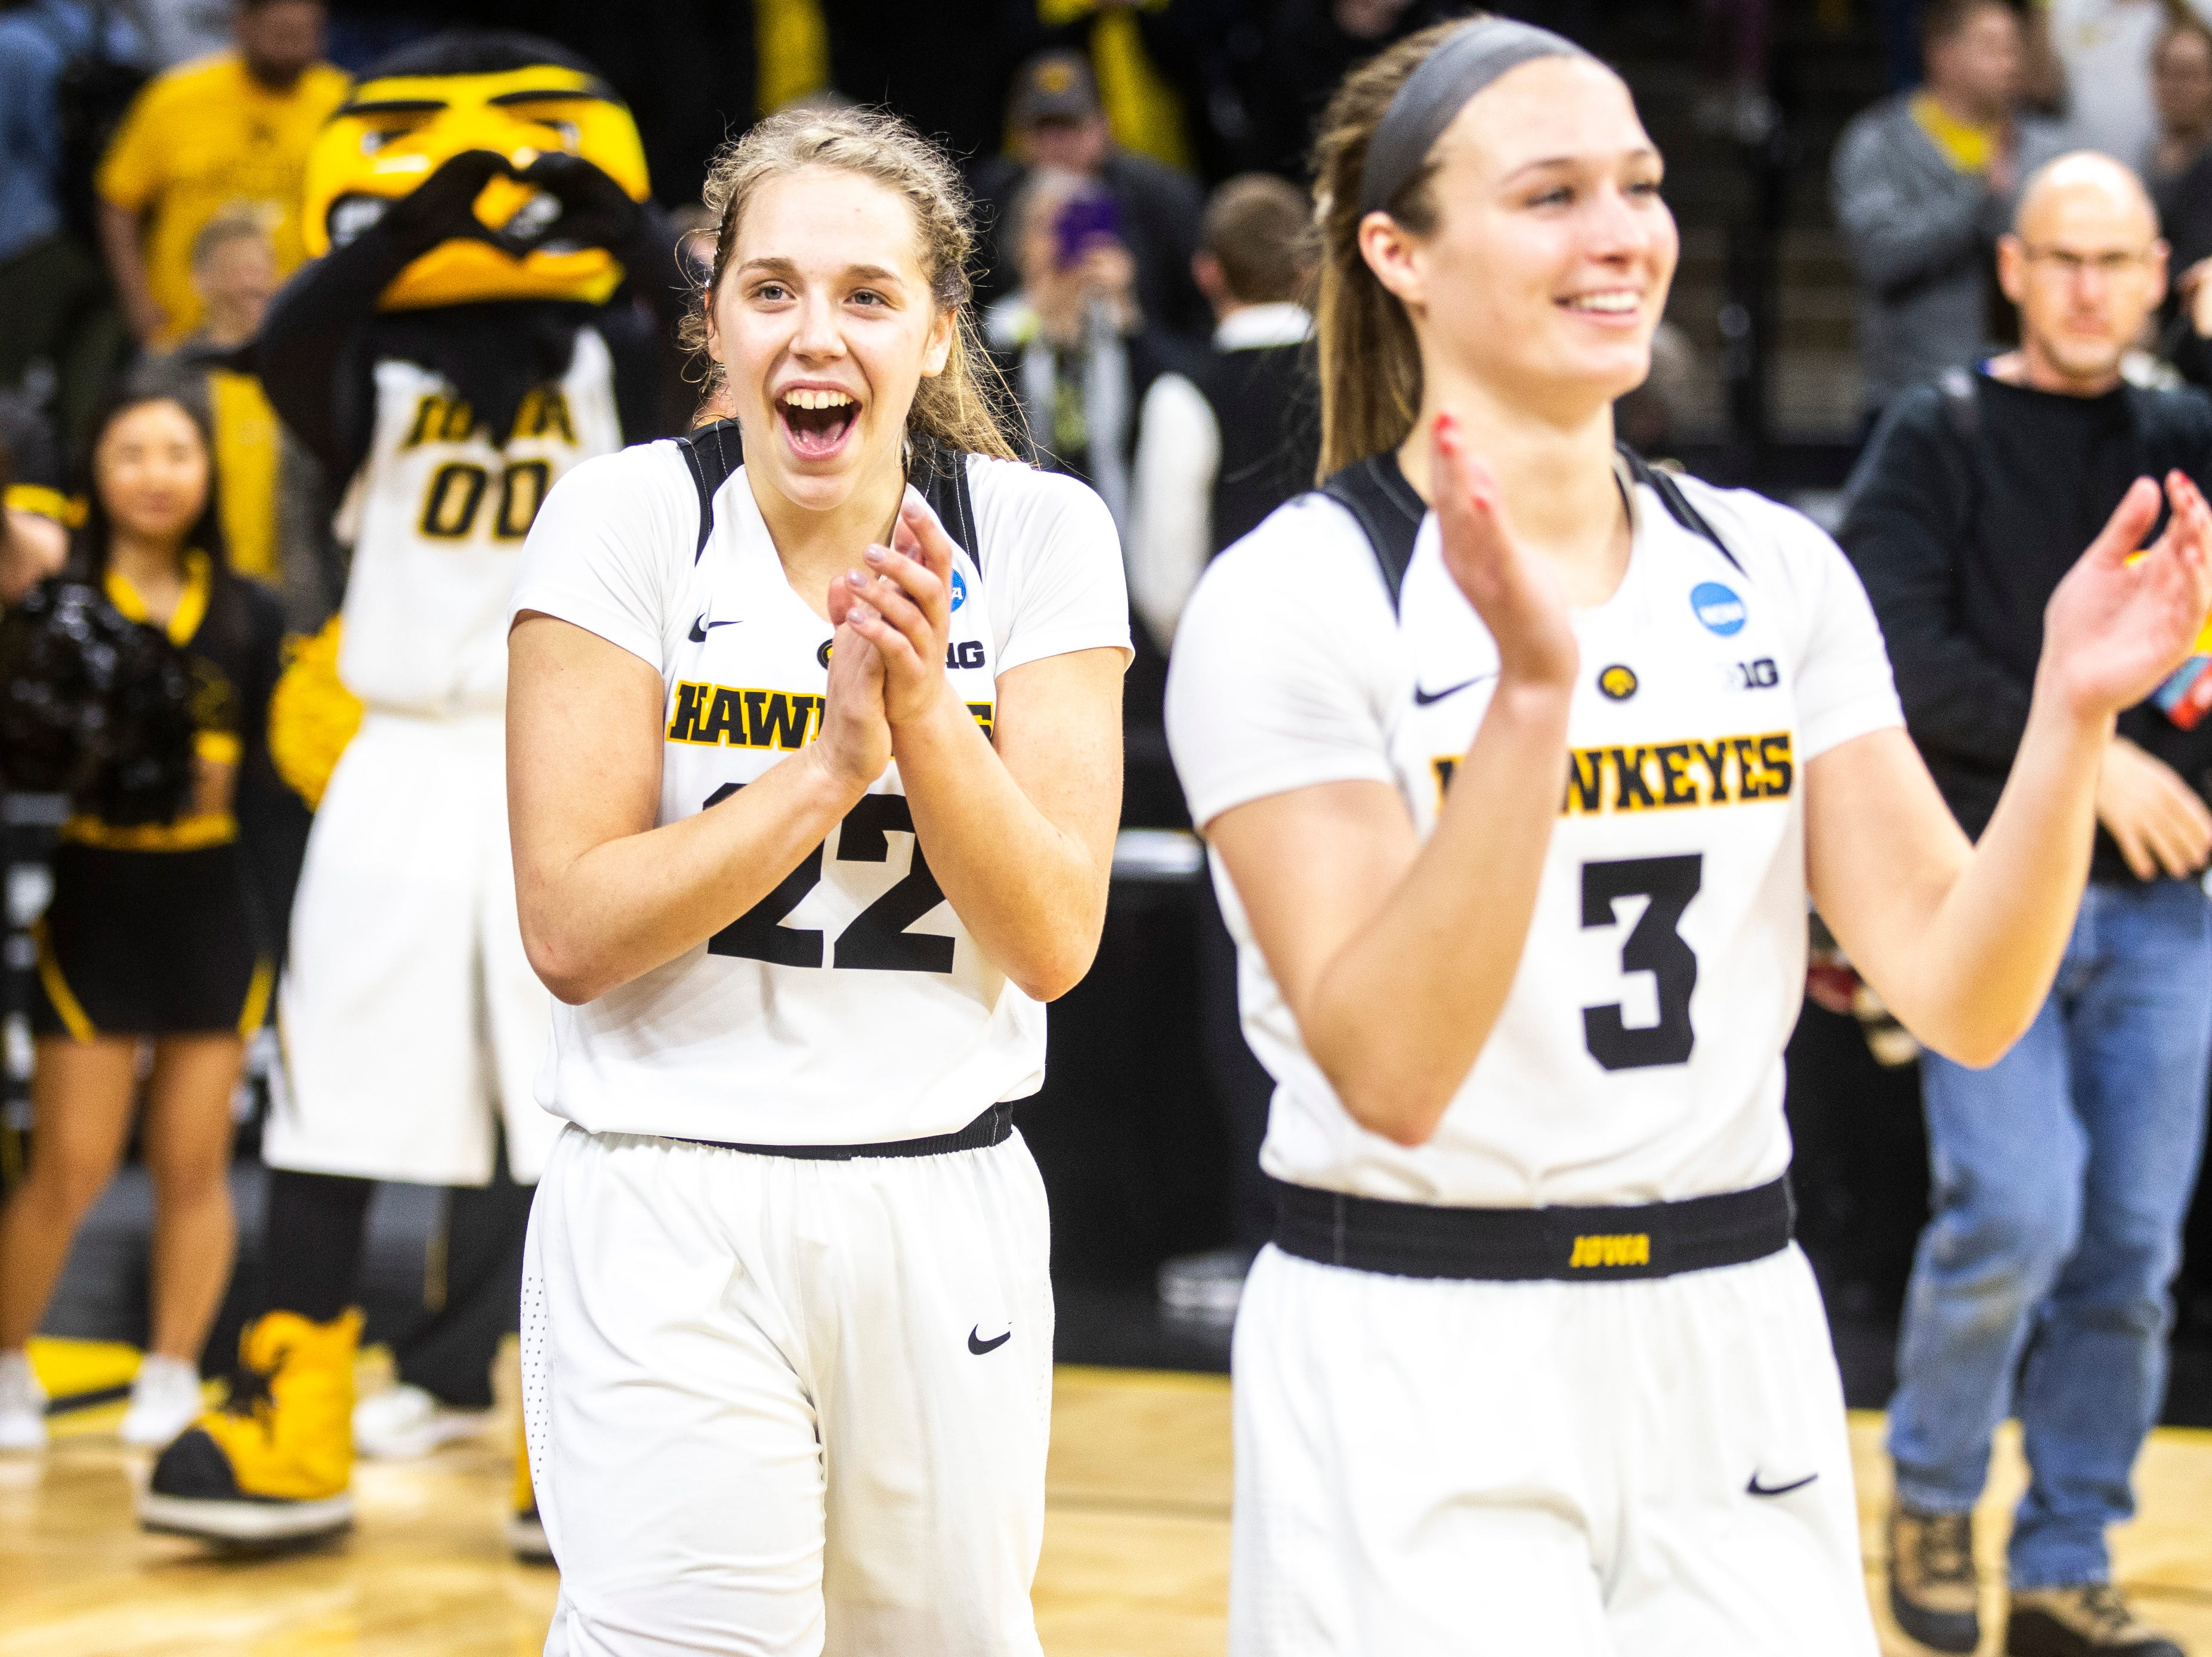 Iowa guard Kathleen Doyle (22) and Iowa guard Makenzie Meyer (3) celebrate after a NCAA women's basketball tournament second-round game, Sunday, March 24, 2019, at Carver-Hawkeye Arena in Iowa City, Iowa.